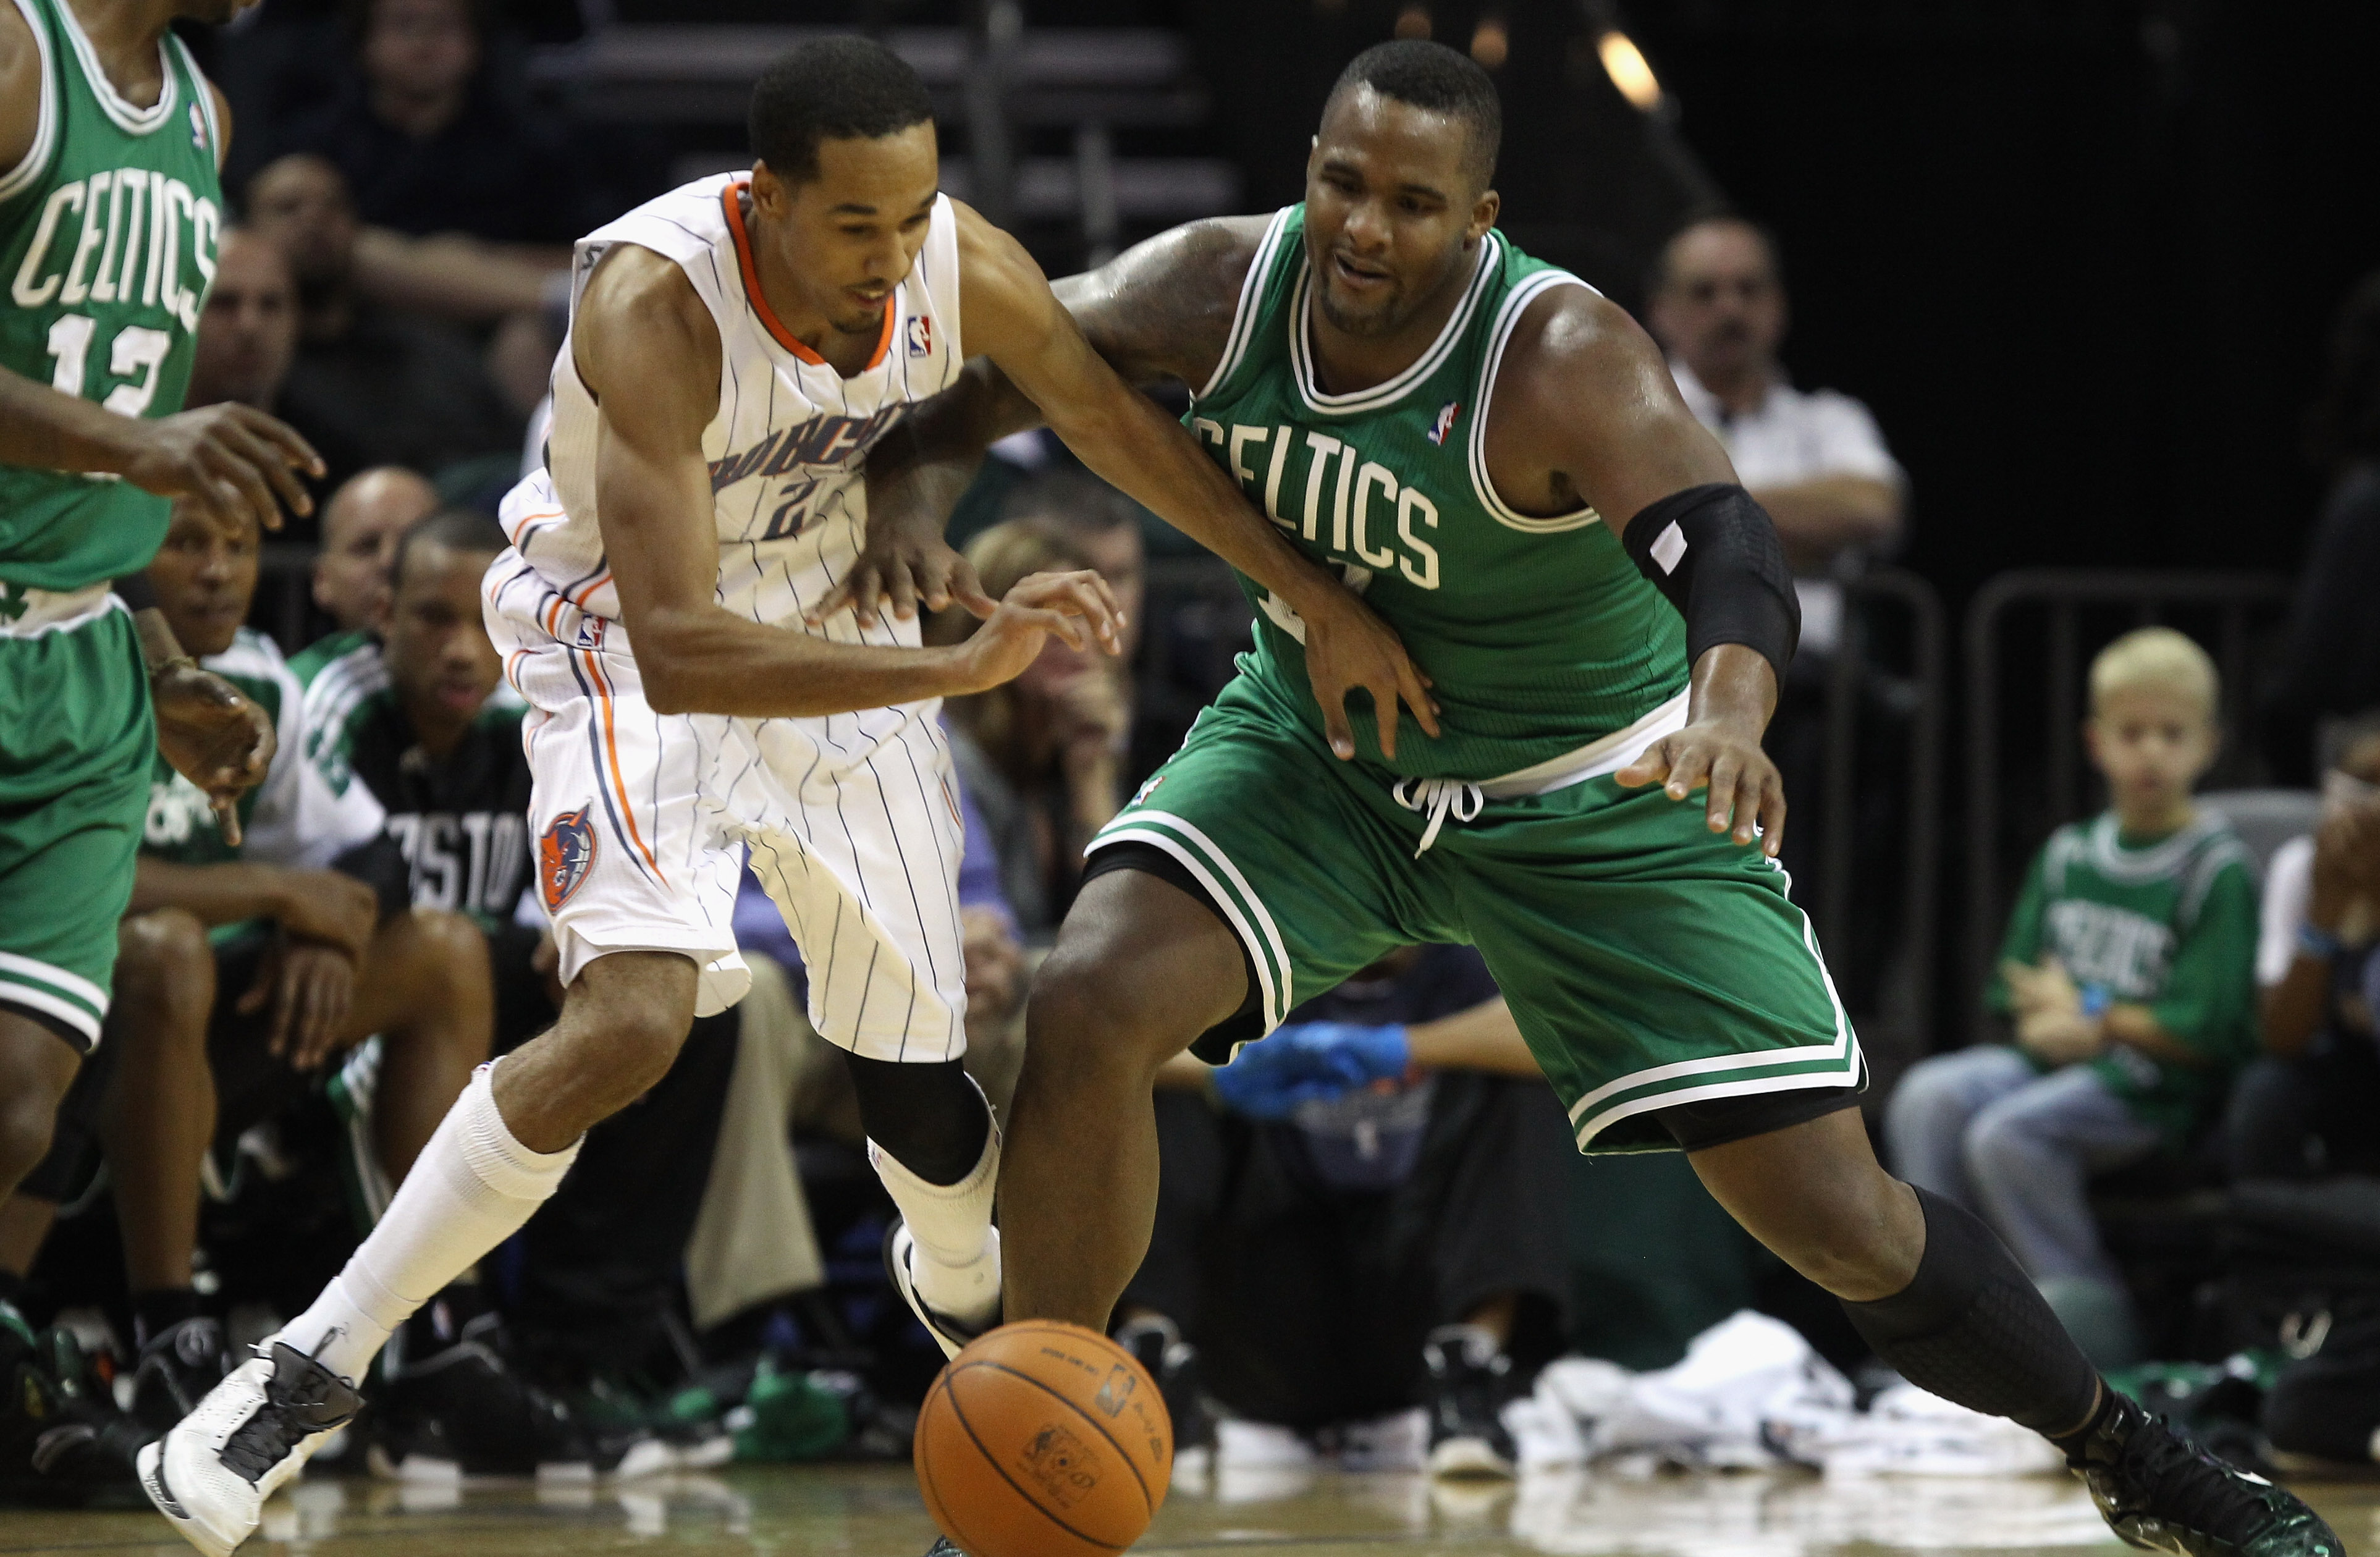 CHARLOTTE, NC - DECEMBER 11:  Glen Davis #11 of the Boston Celtics battles for a loose ball with Shaun Livingston #2 of the Charlotte Bobcats during their game at Time Warner Cable Arena on December 11, 2010 in Charlotte, North Carolina. NOTE TO USER: Use